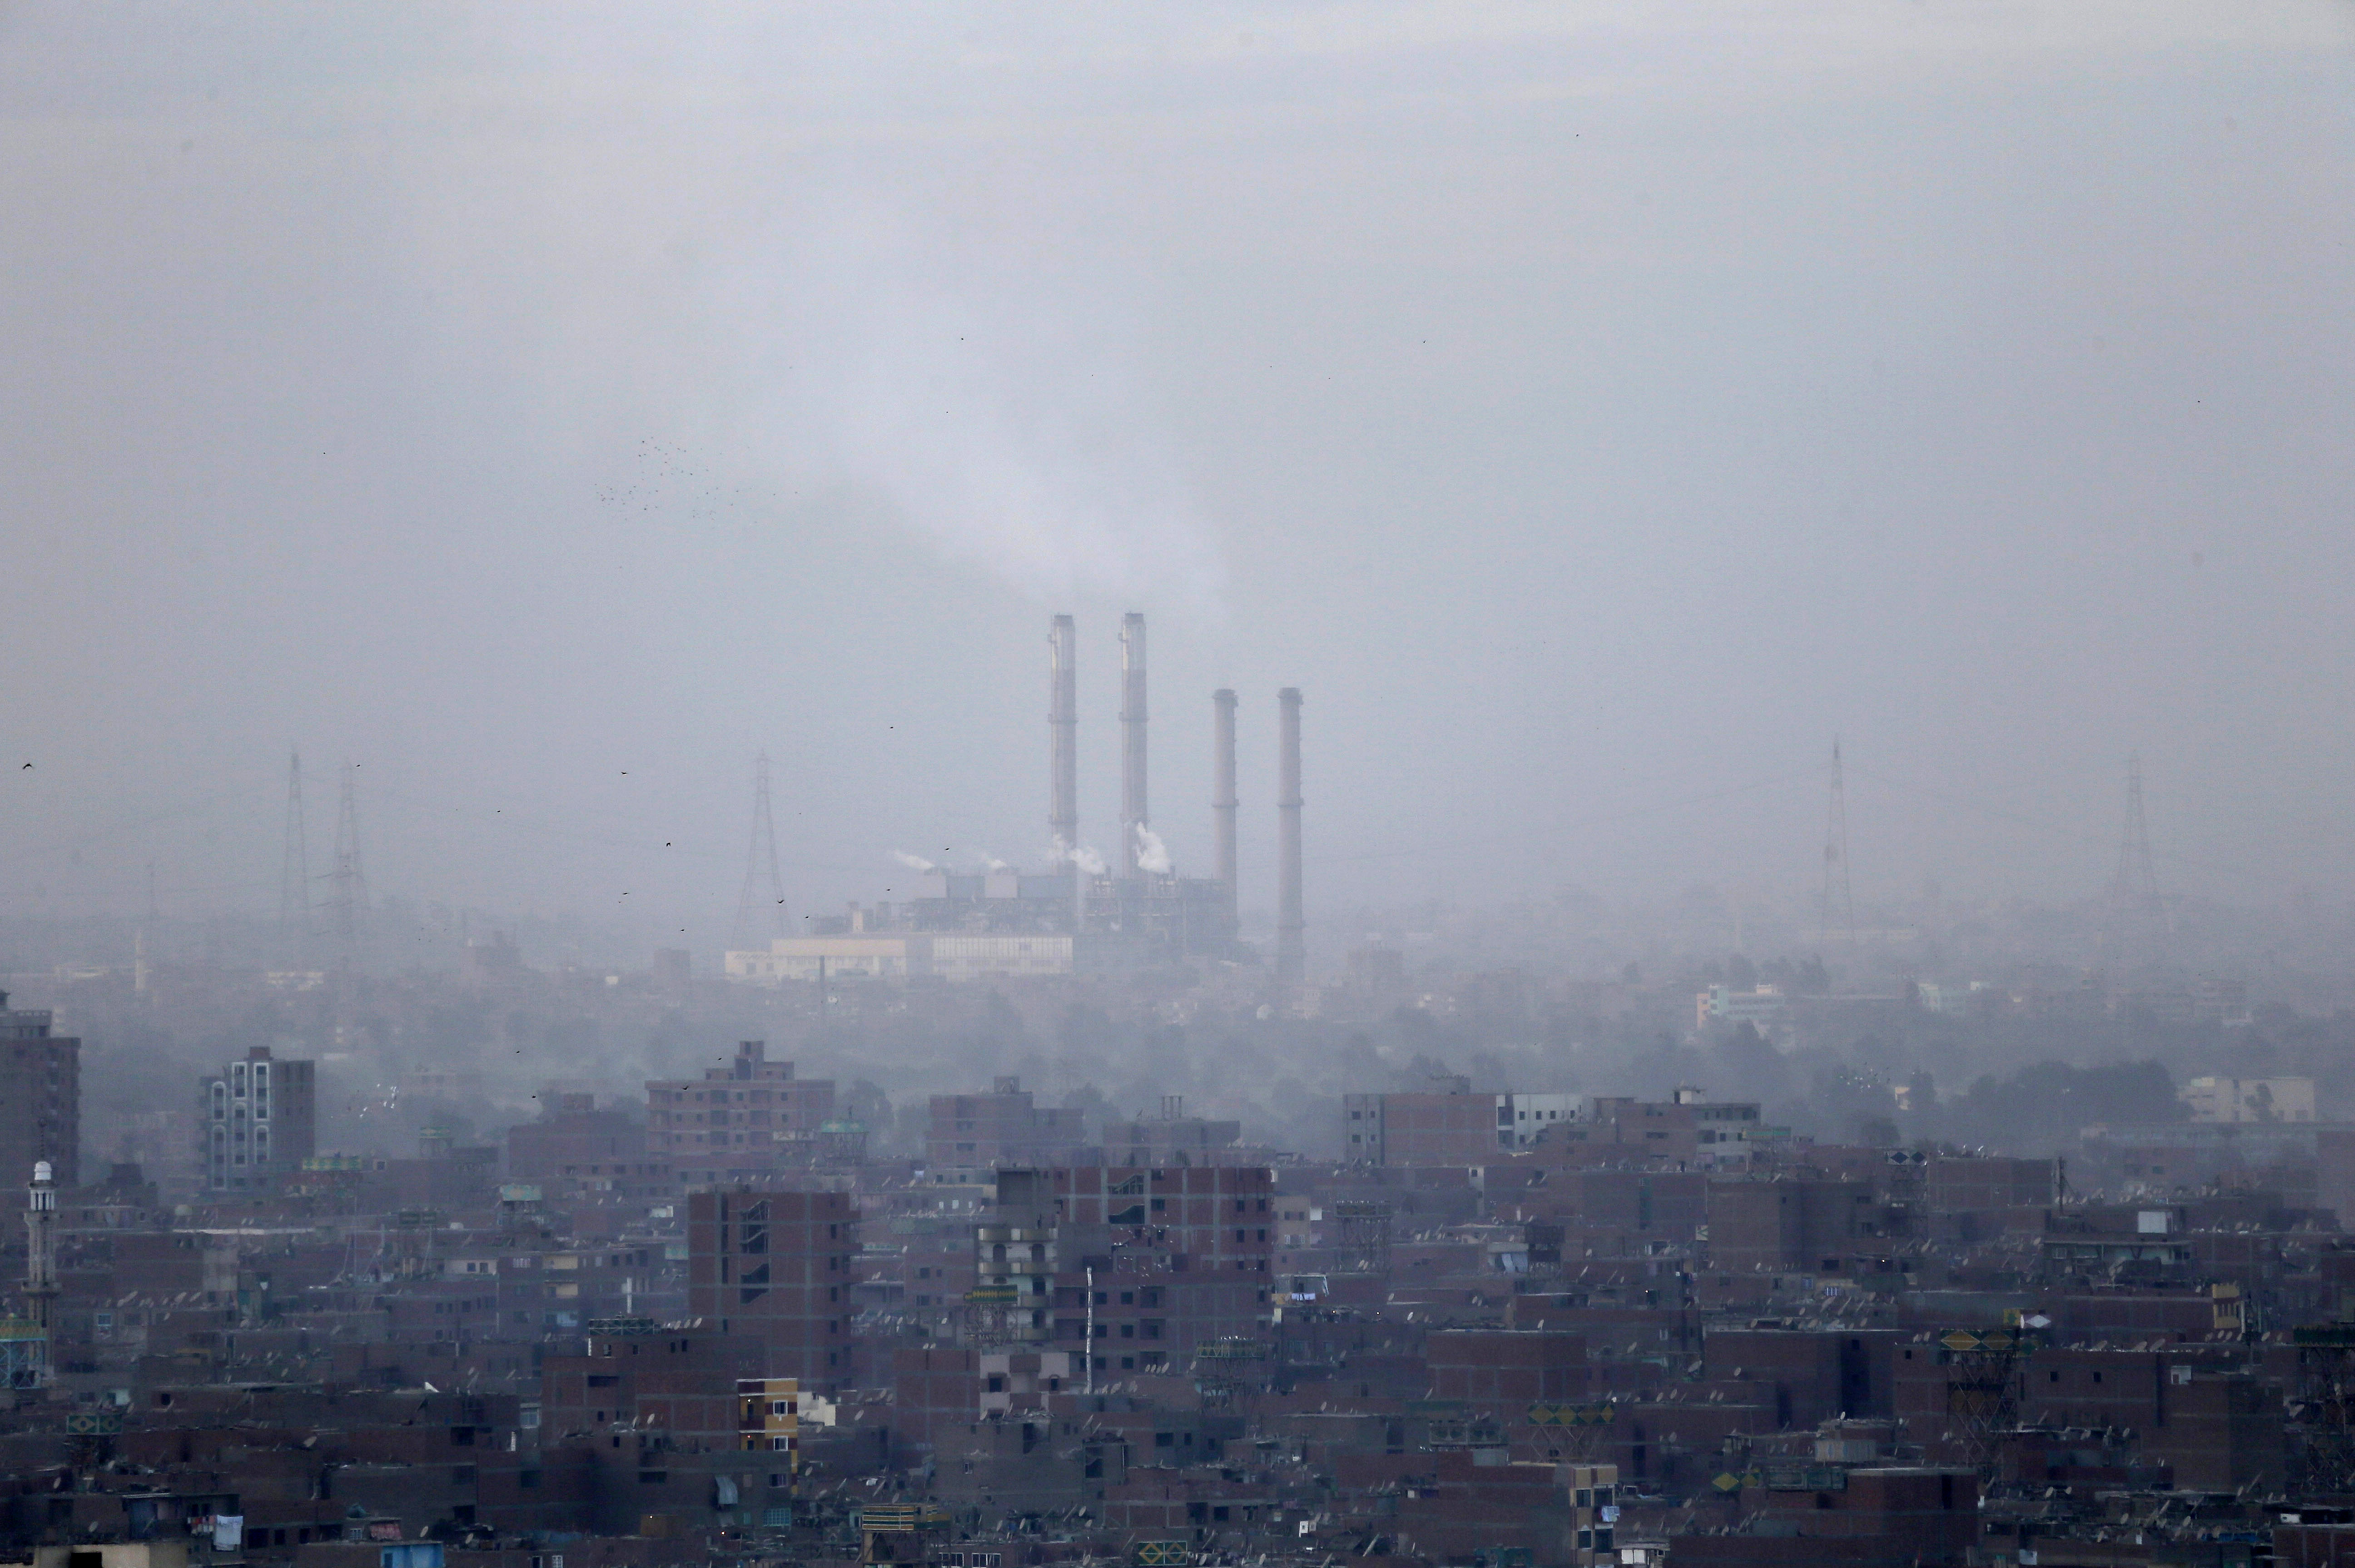 Smog blankets Cairo, Egypt, in 2012. (Photo by Hassan Ammar/Associated Press)